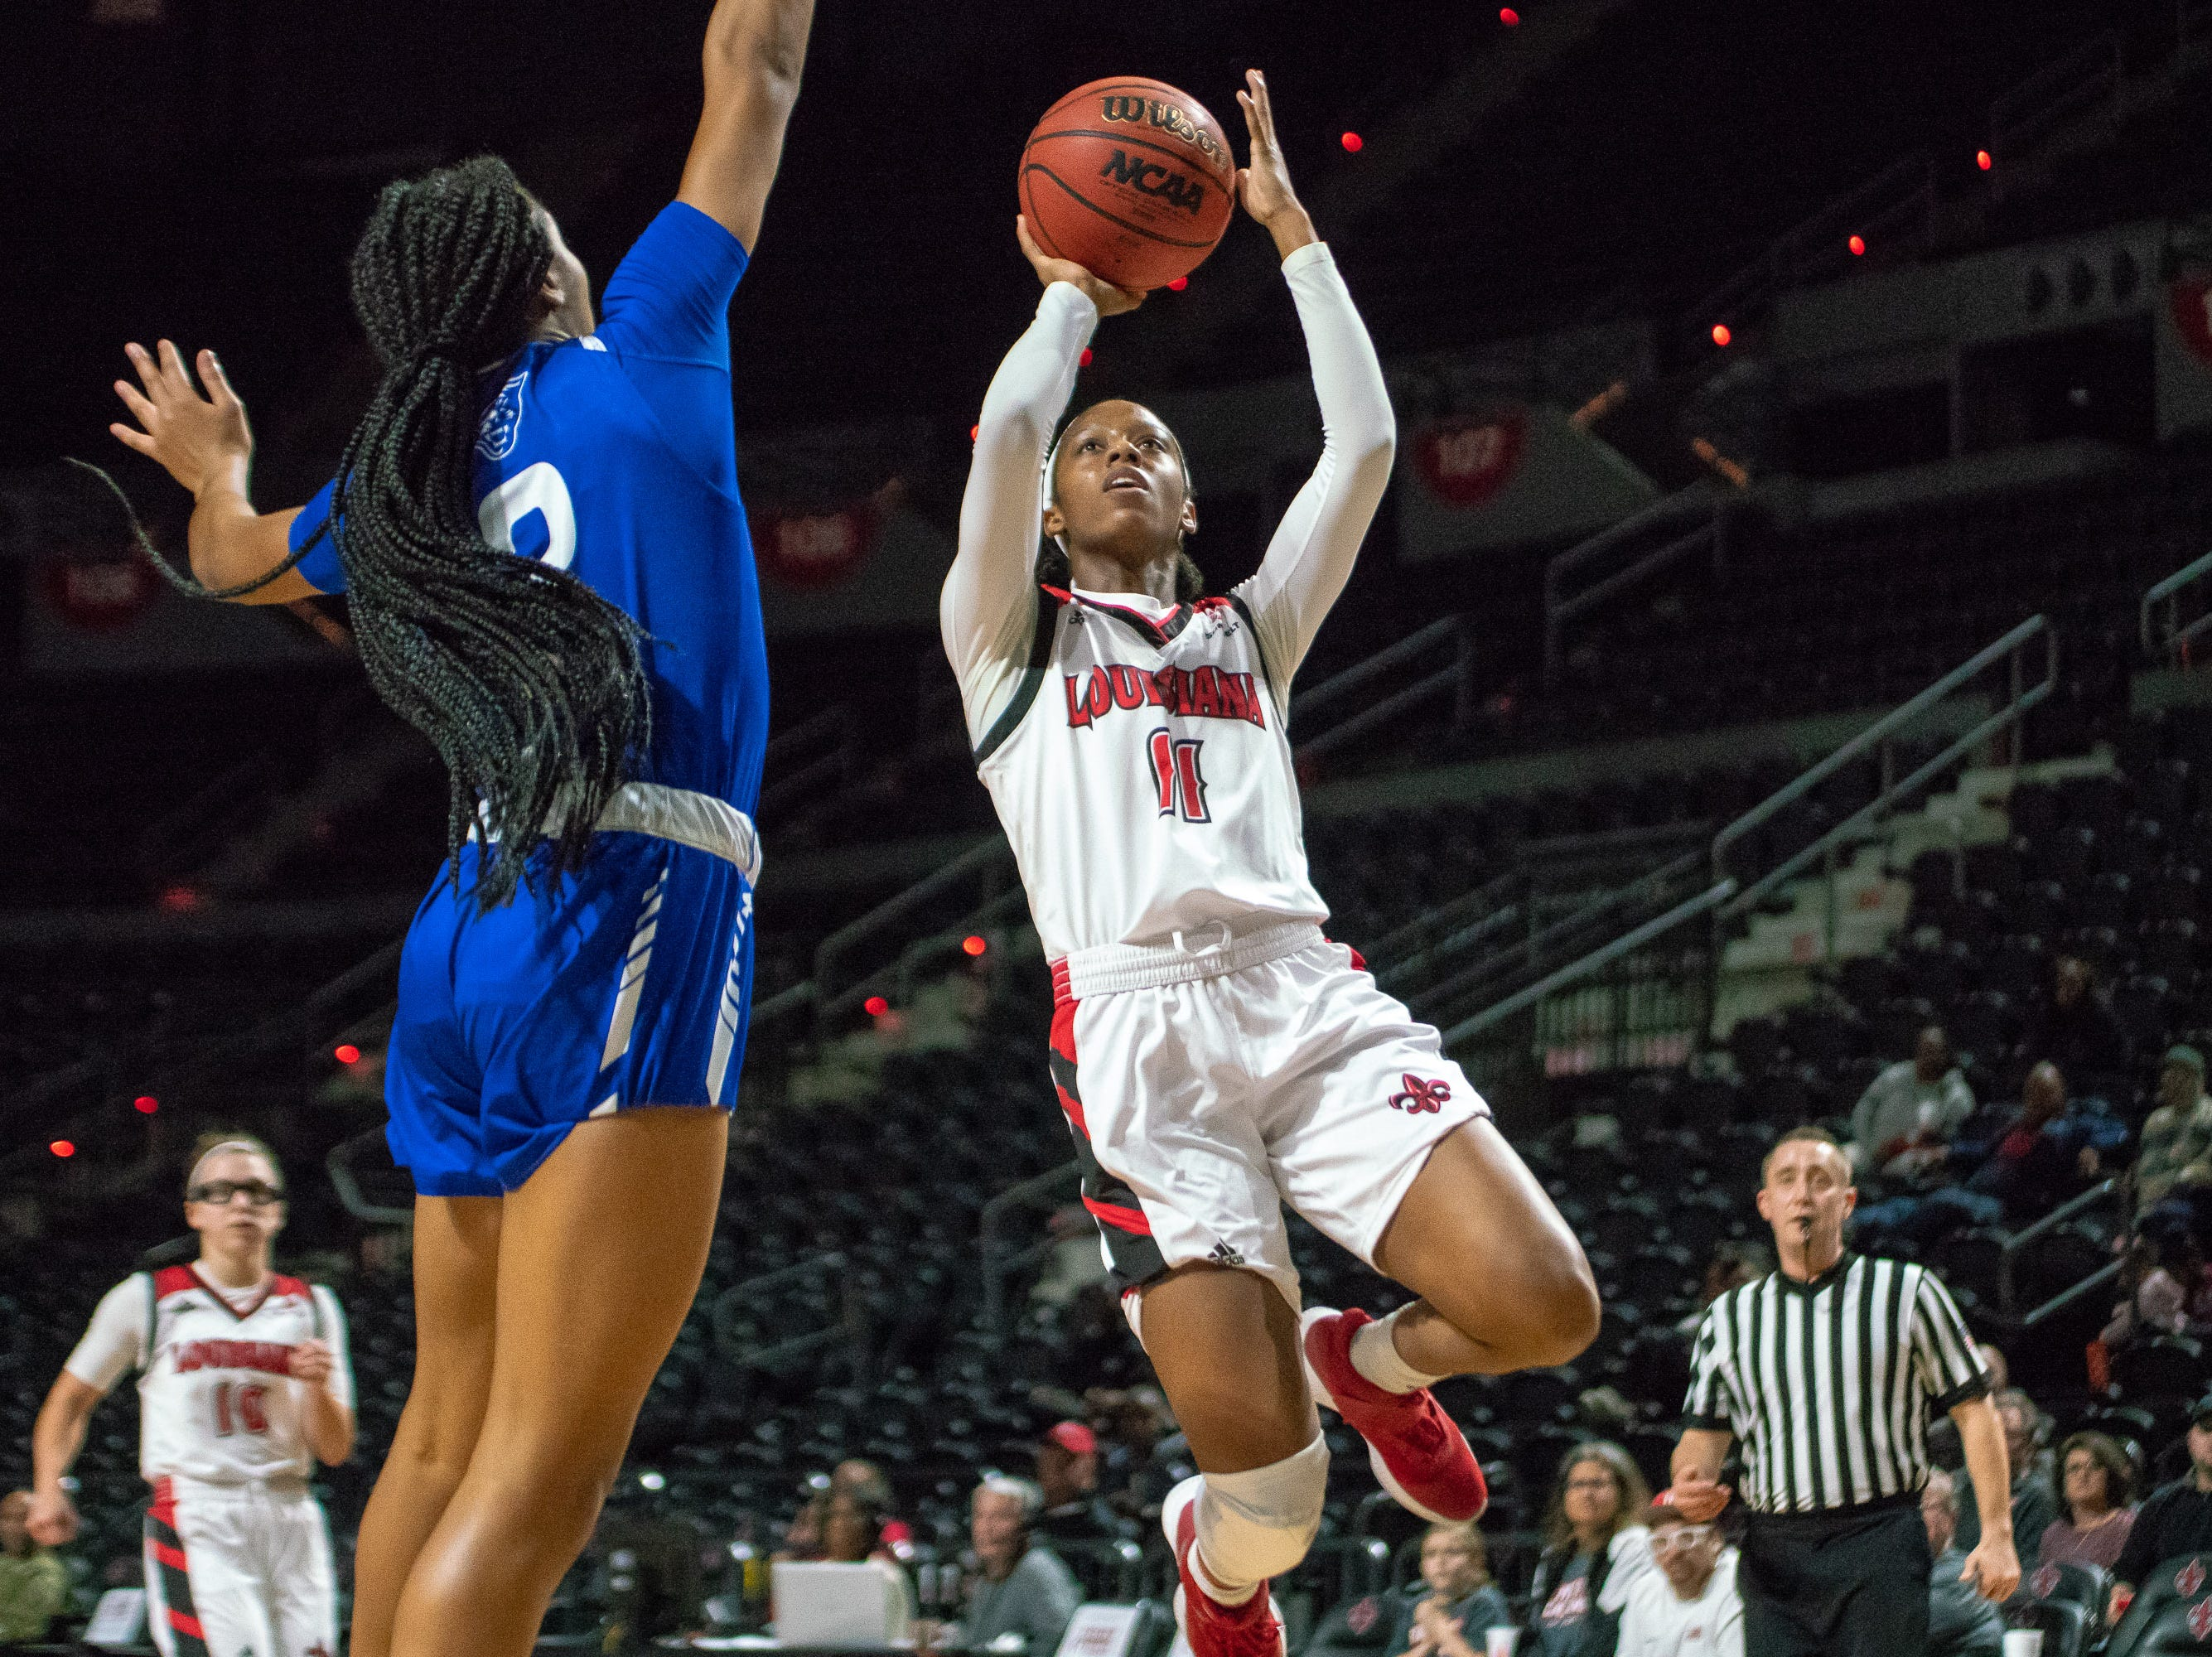 UL's Skyler Goodwin goes up to the goal to score as the Ragin' Cajuns play against the Georgia State Panthers at the Cajundome on January 10, 2019.